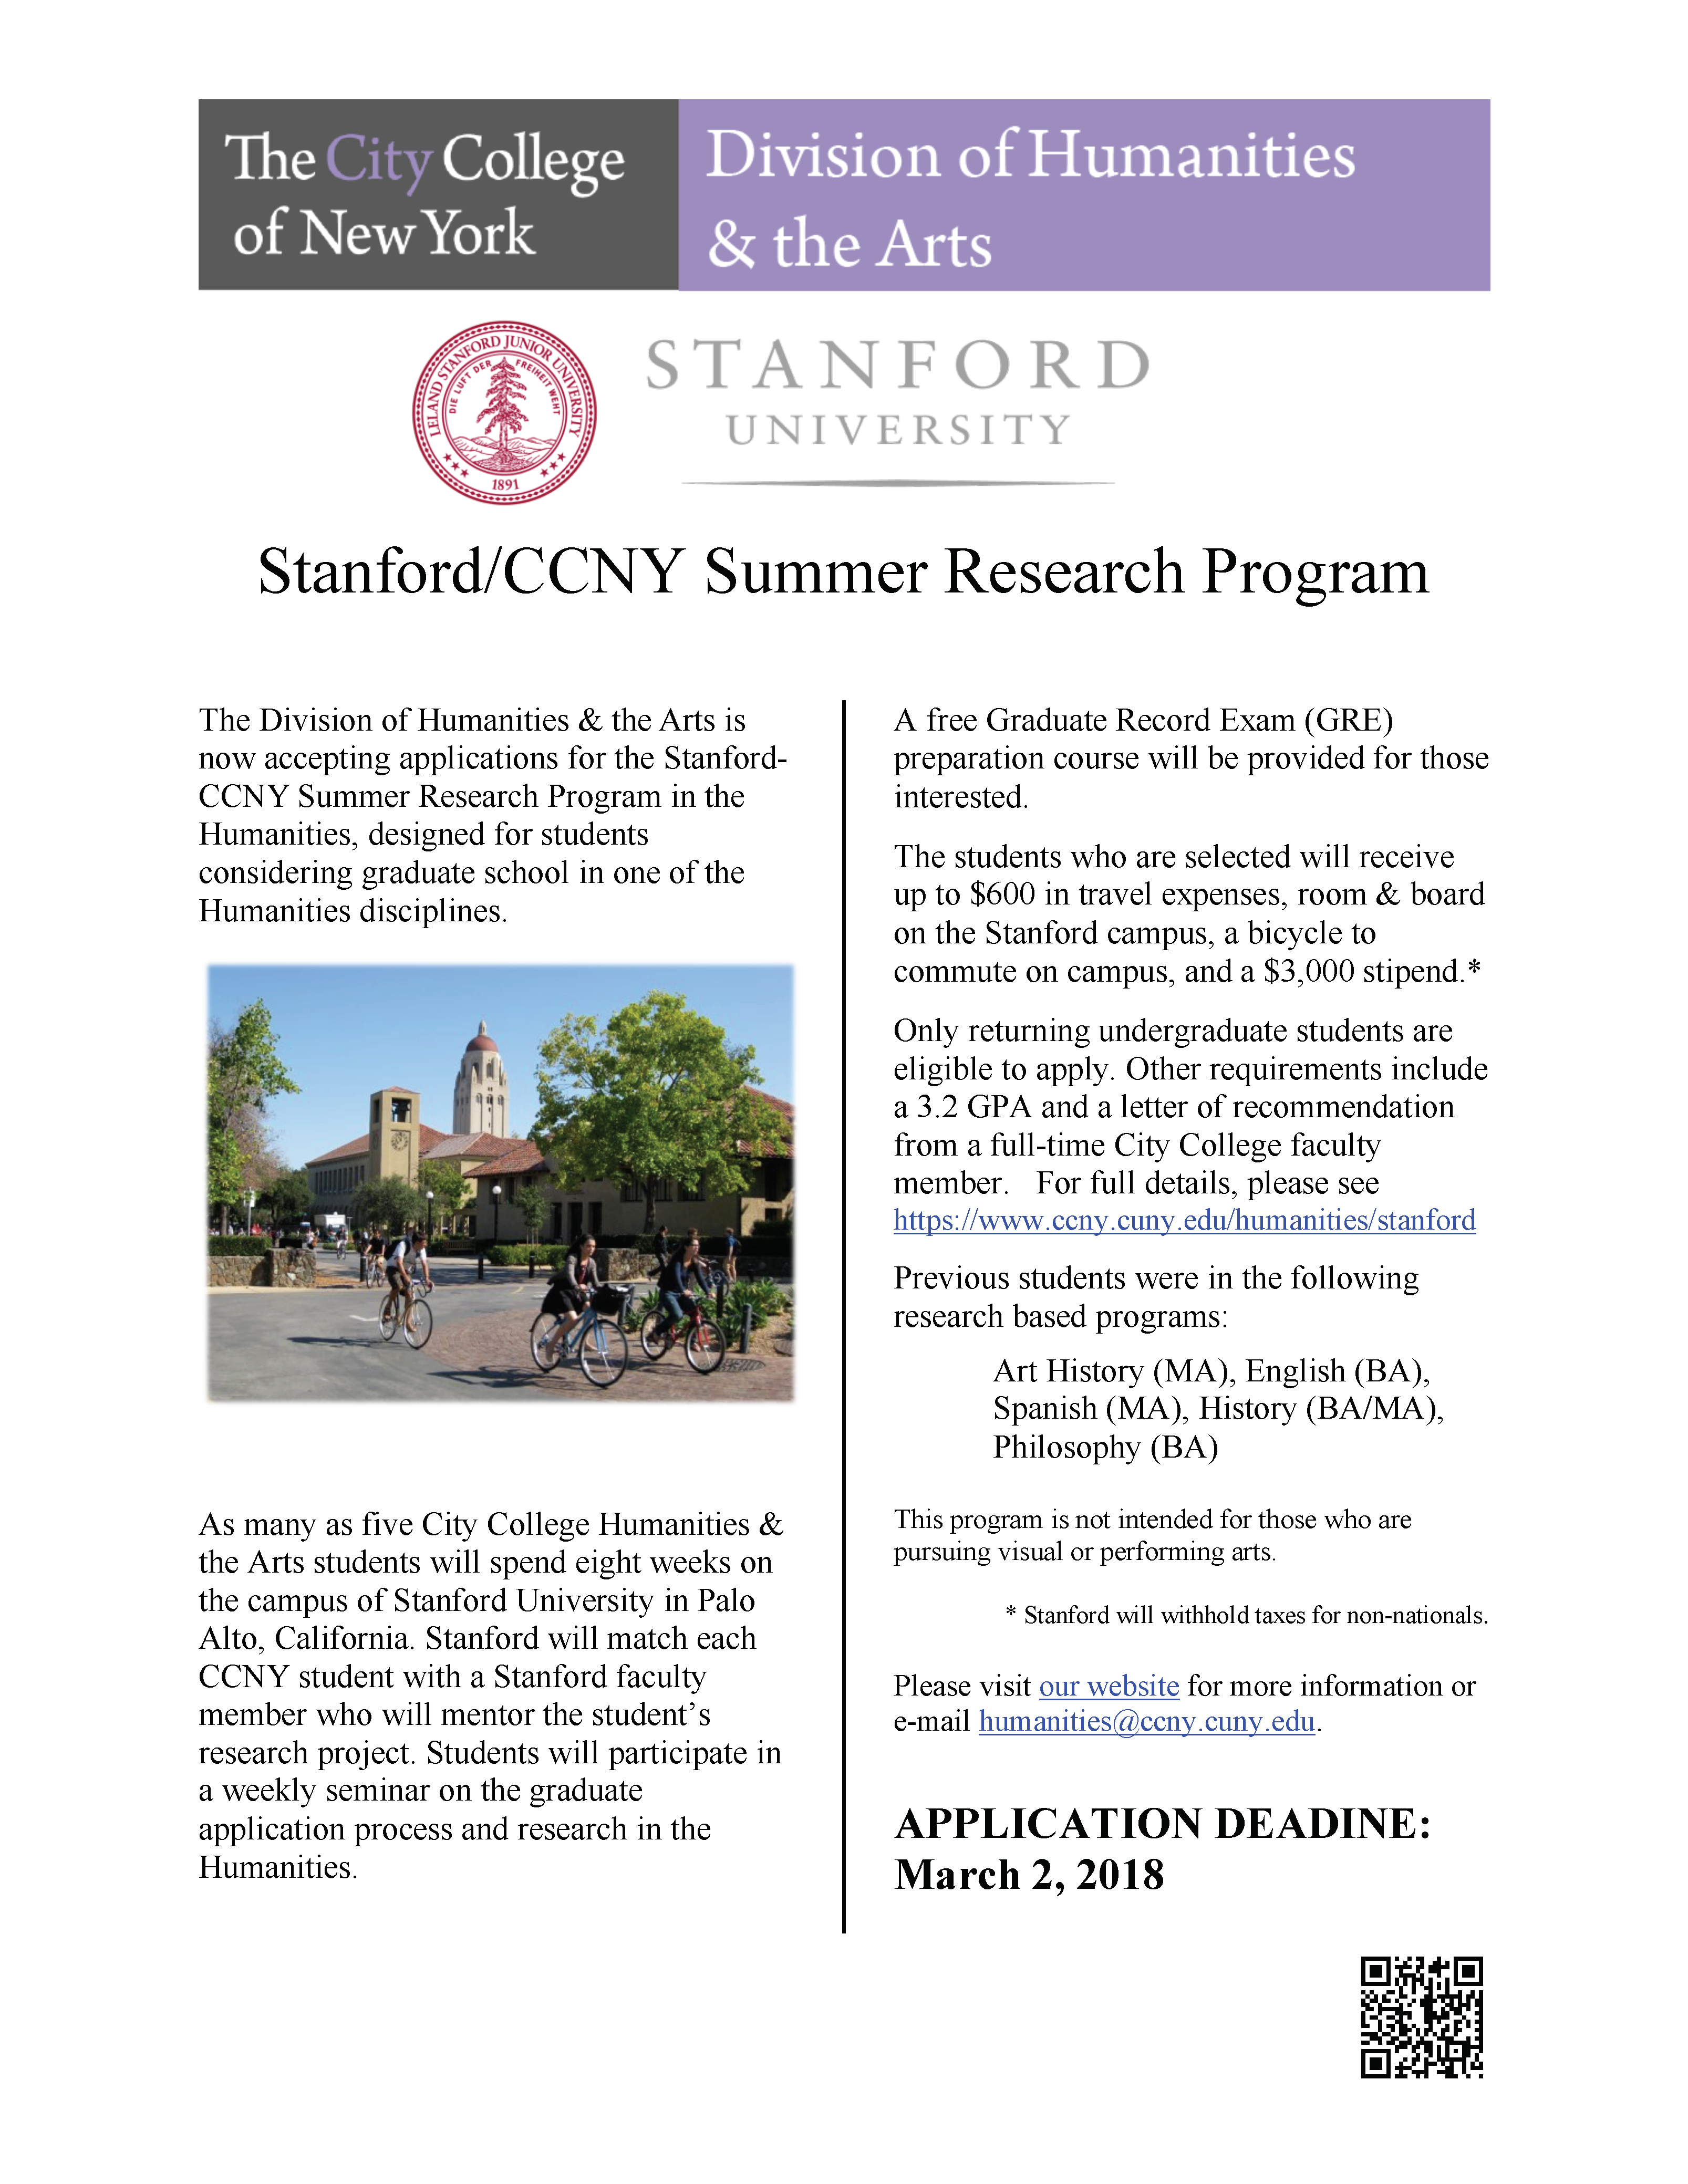 Stanford-CCNY Summer Research in the Humanities Program